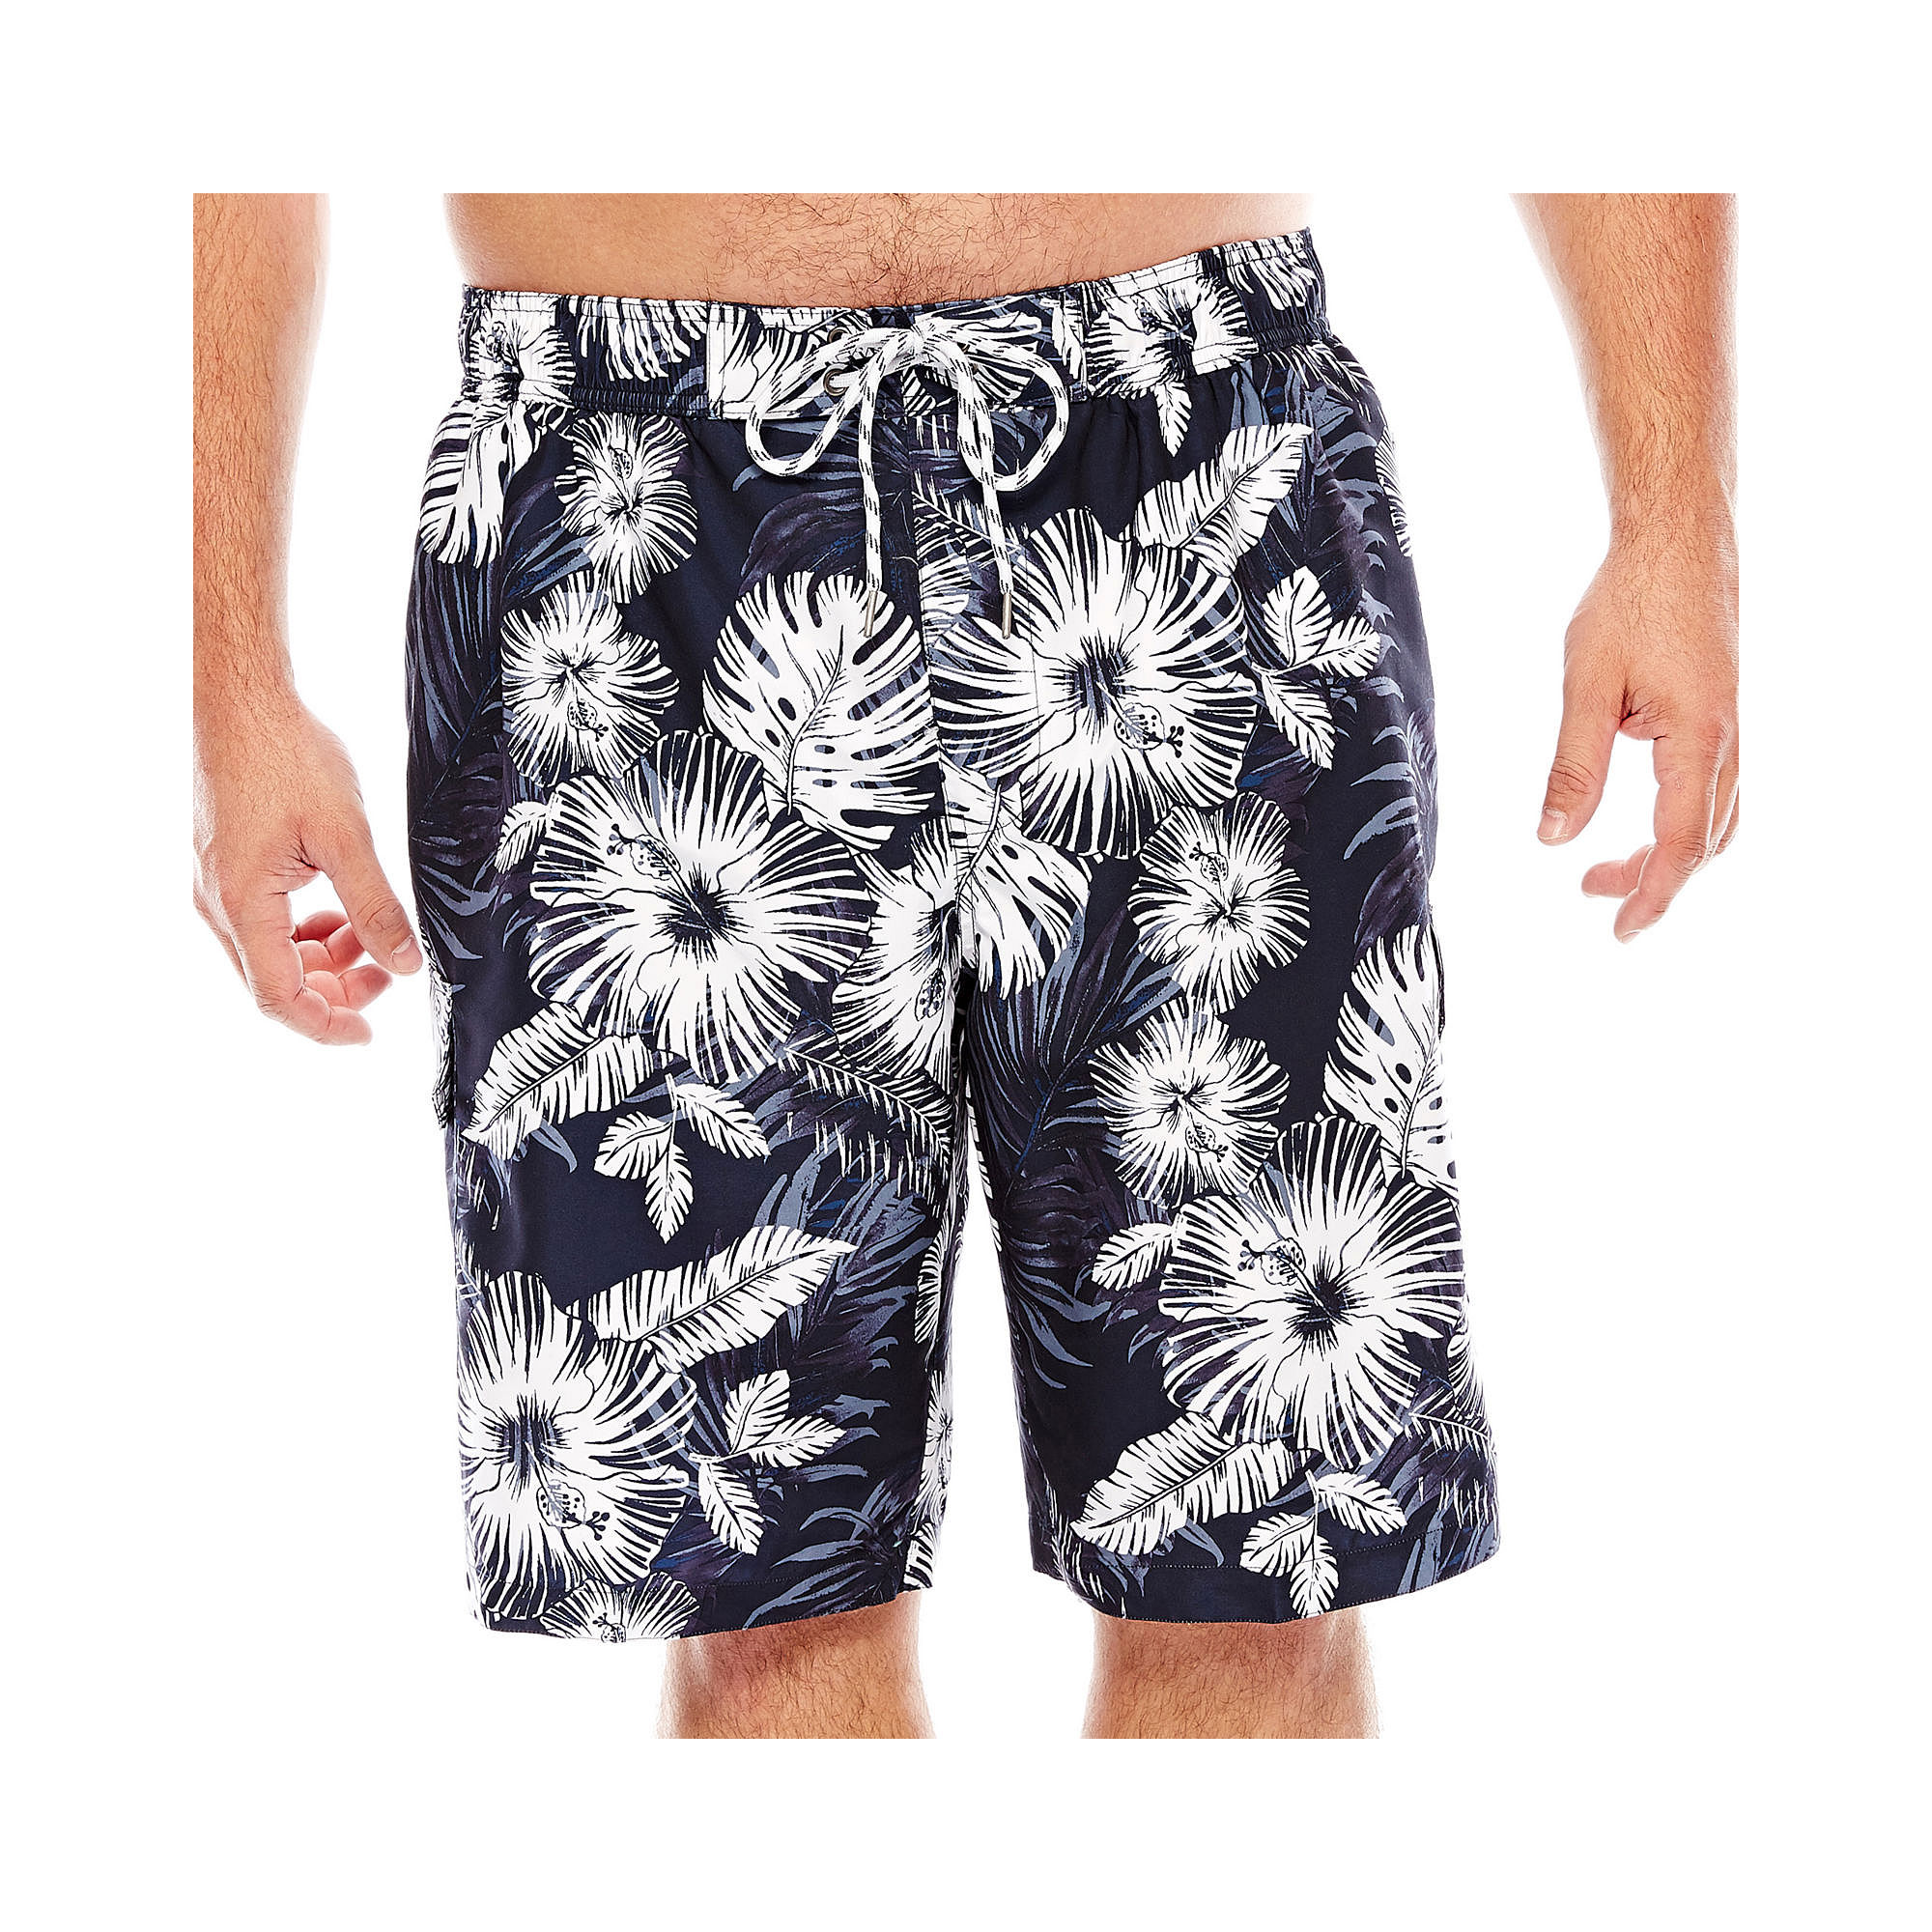 768831a47d UPC 058336010125 product image for The Foundry Supply Co. Swim Shorts - Big  & Tall